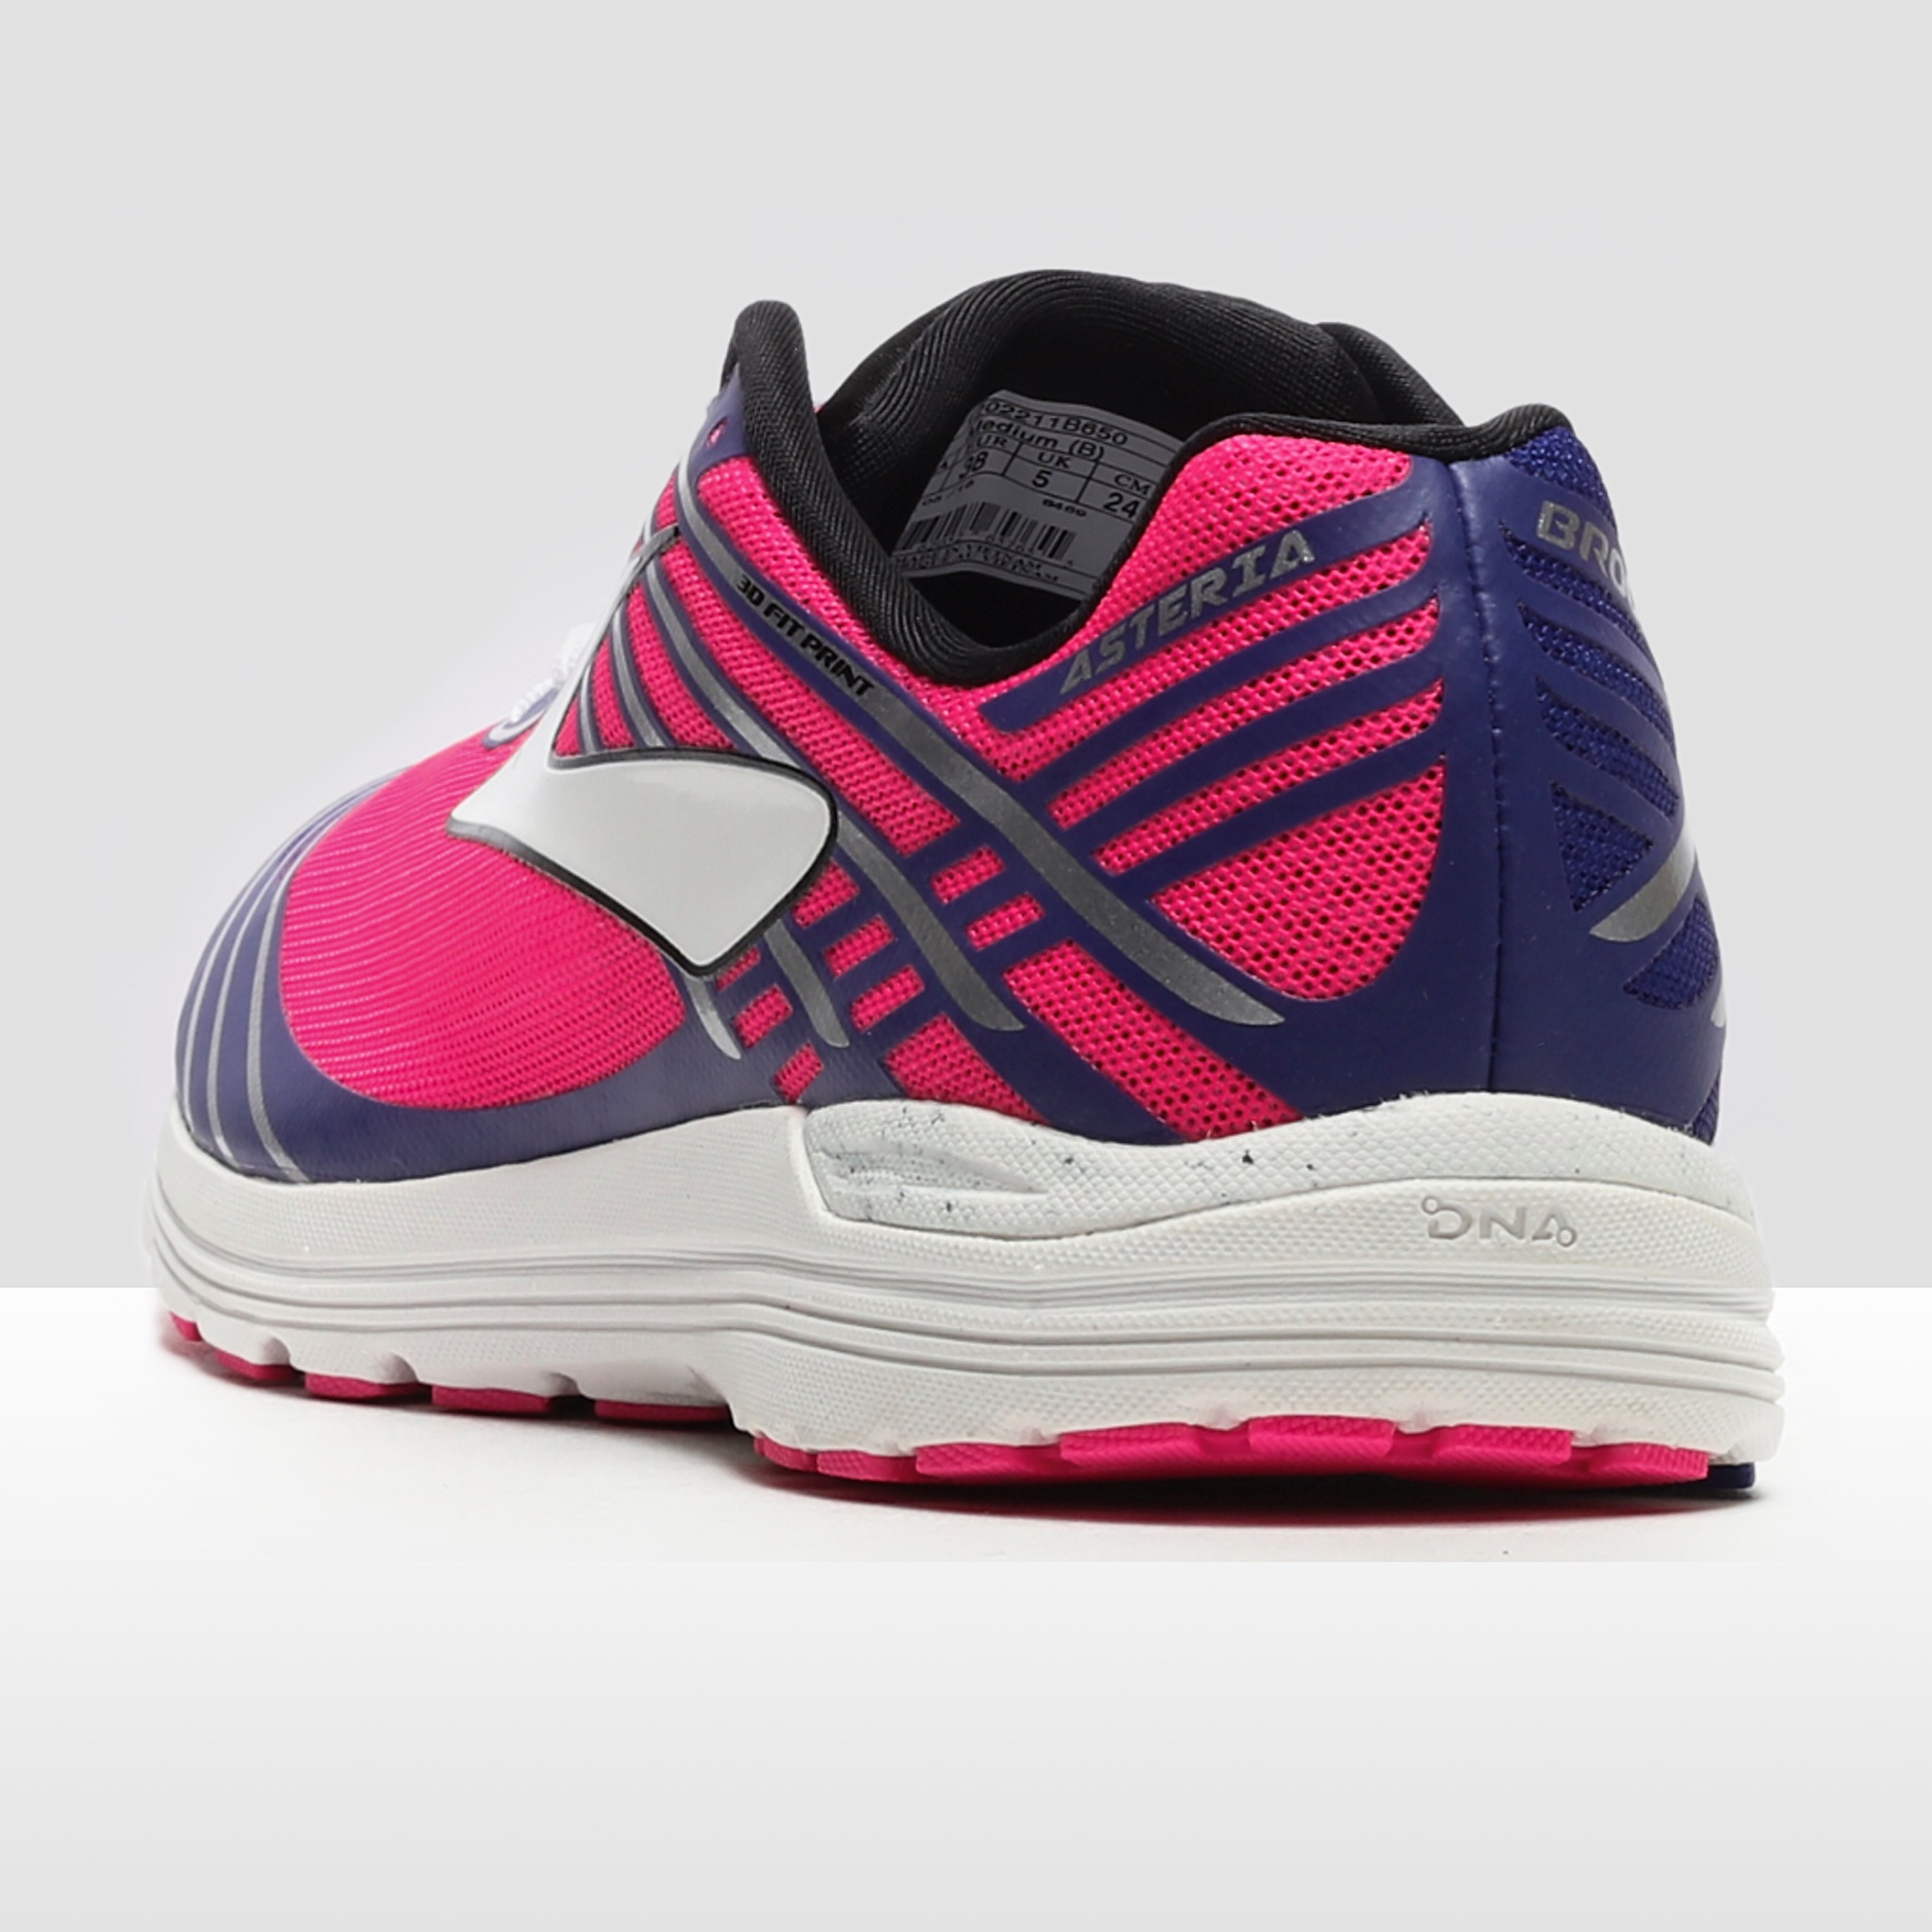 Brooks Asteria Knockout Women's Running Shoes